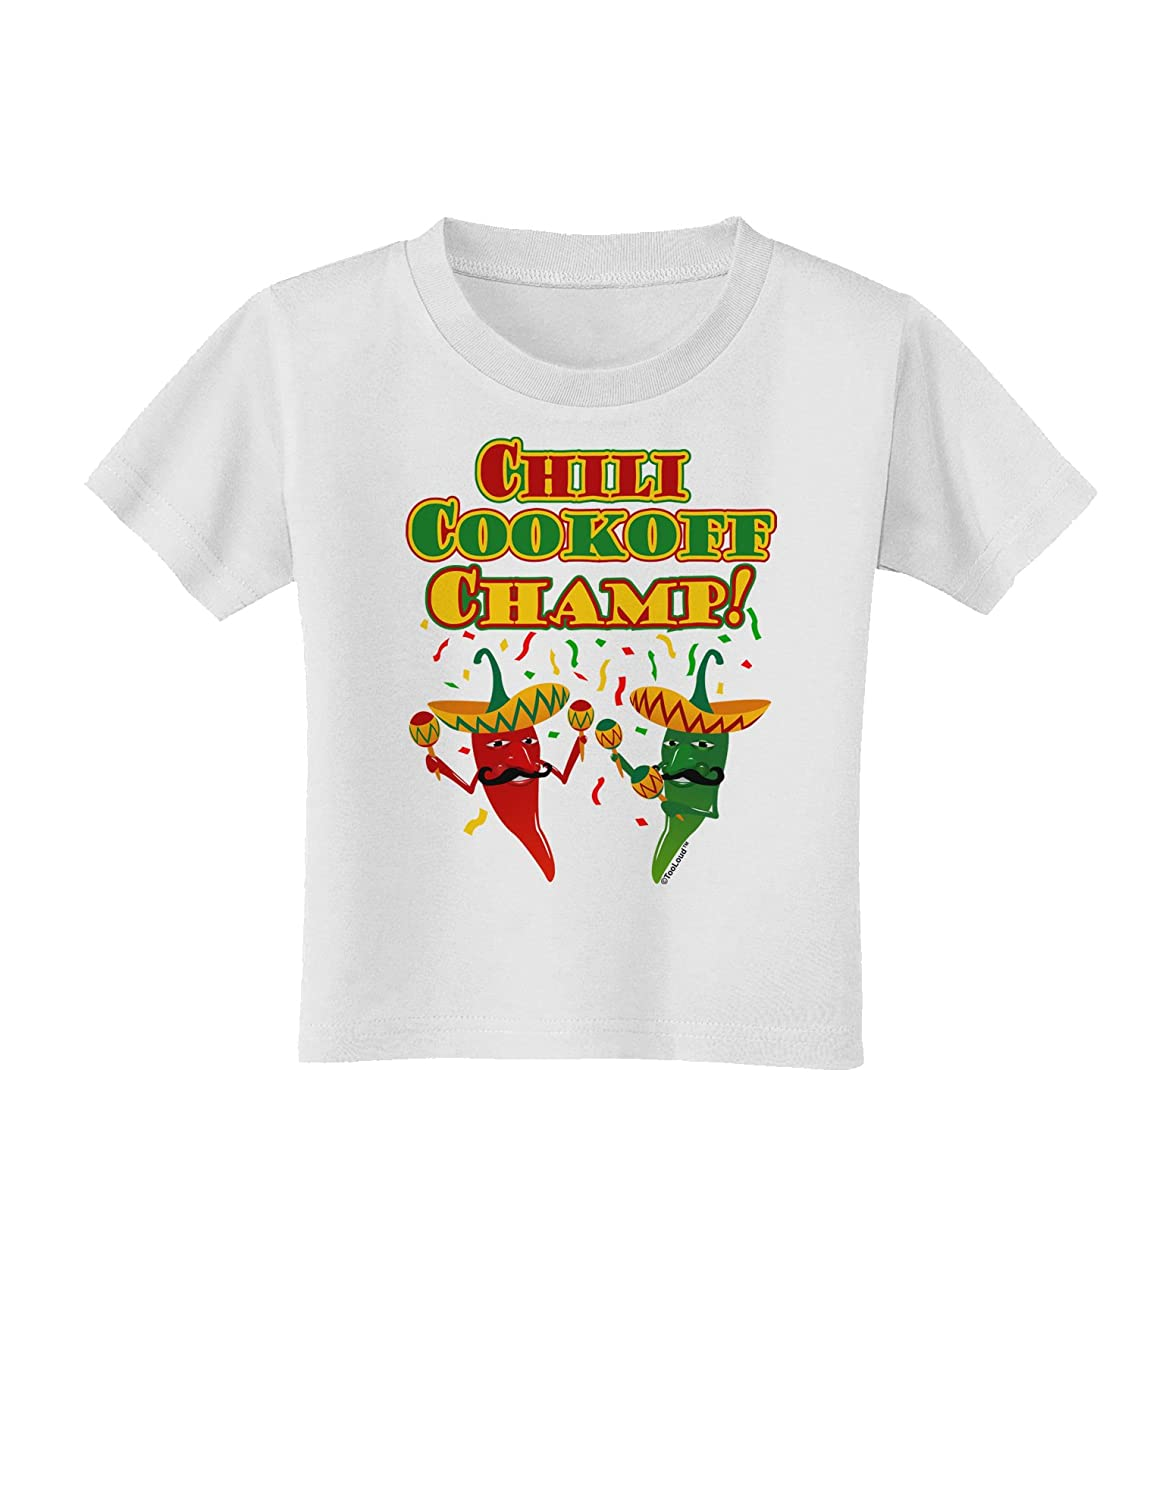 Chile Peppers Toddler T-Shirt TooLoud Chili Cookoff Champ